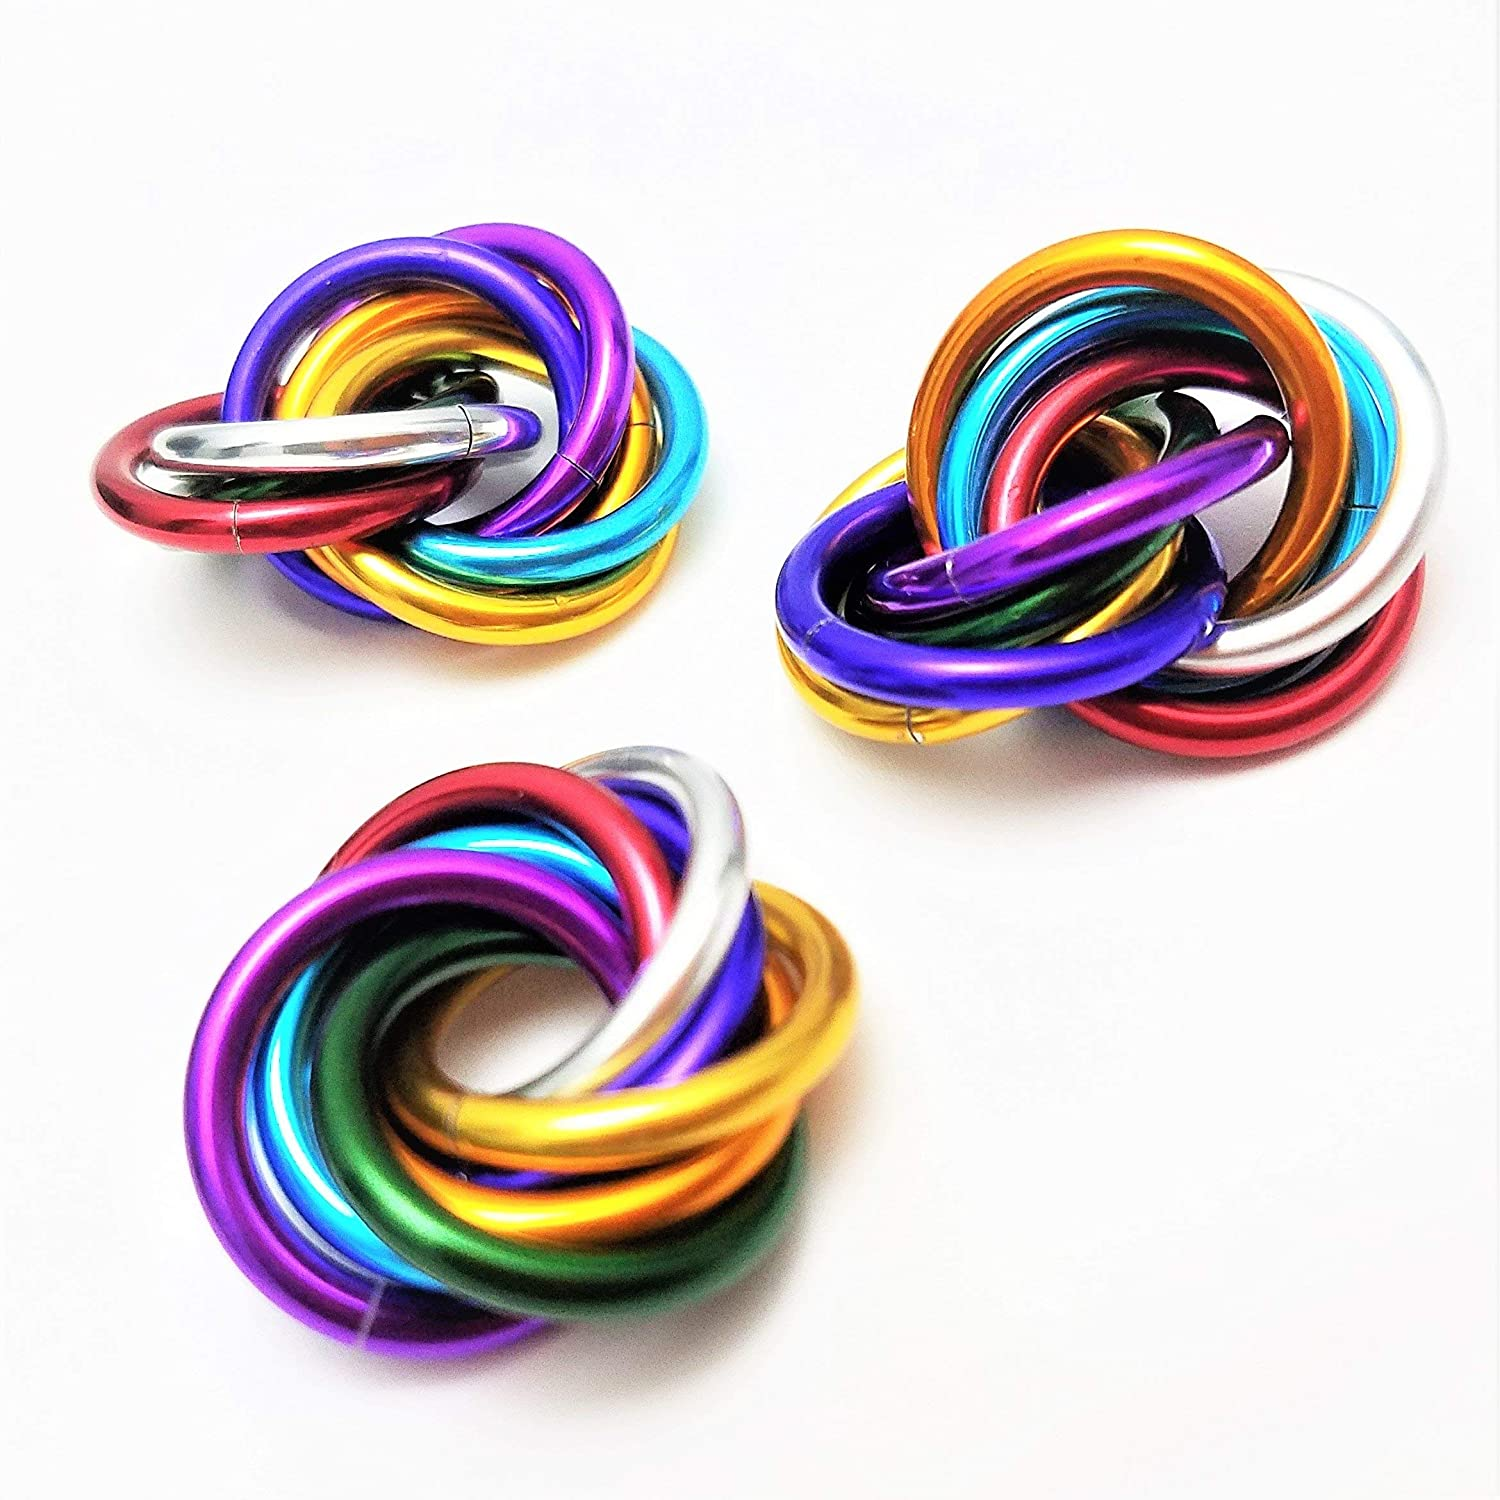 Half Möbii Rainbow (3 Pack): Small Mobius Hand Fidget Toy, Shiny Stress Rings for Restless Hands, Office Toy